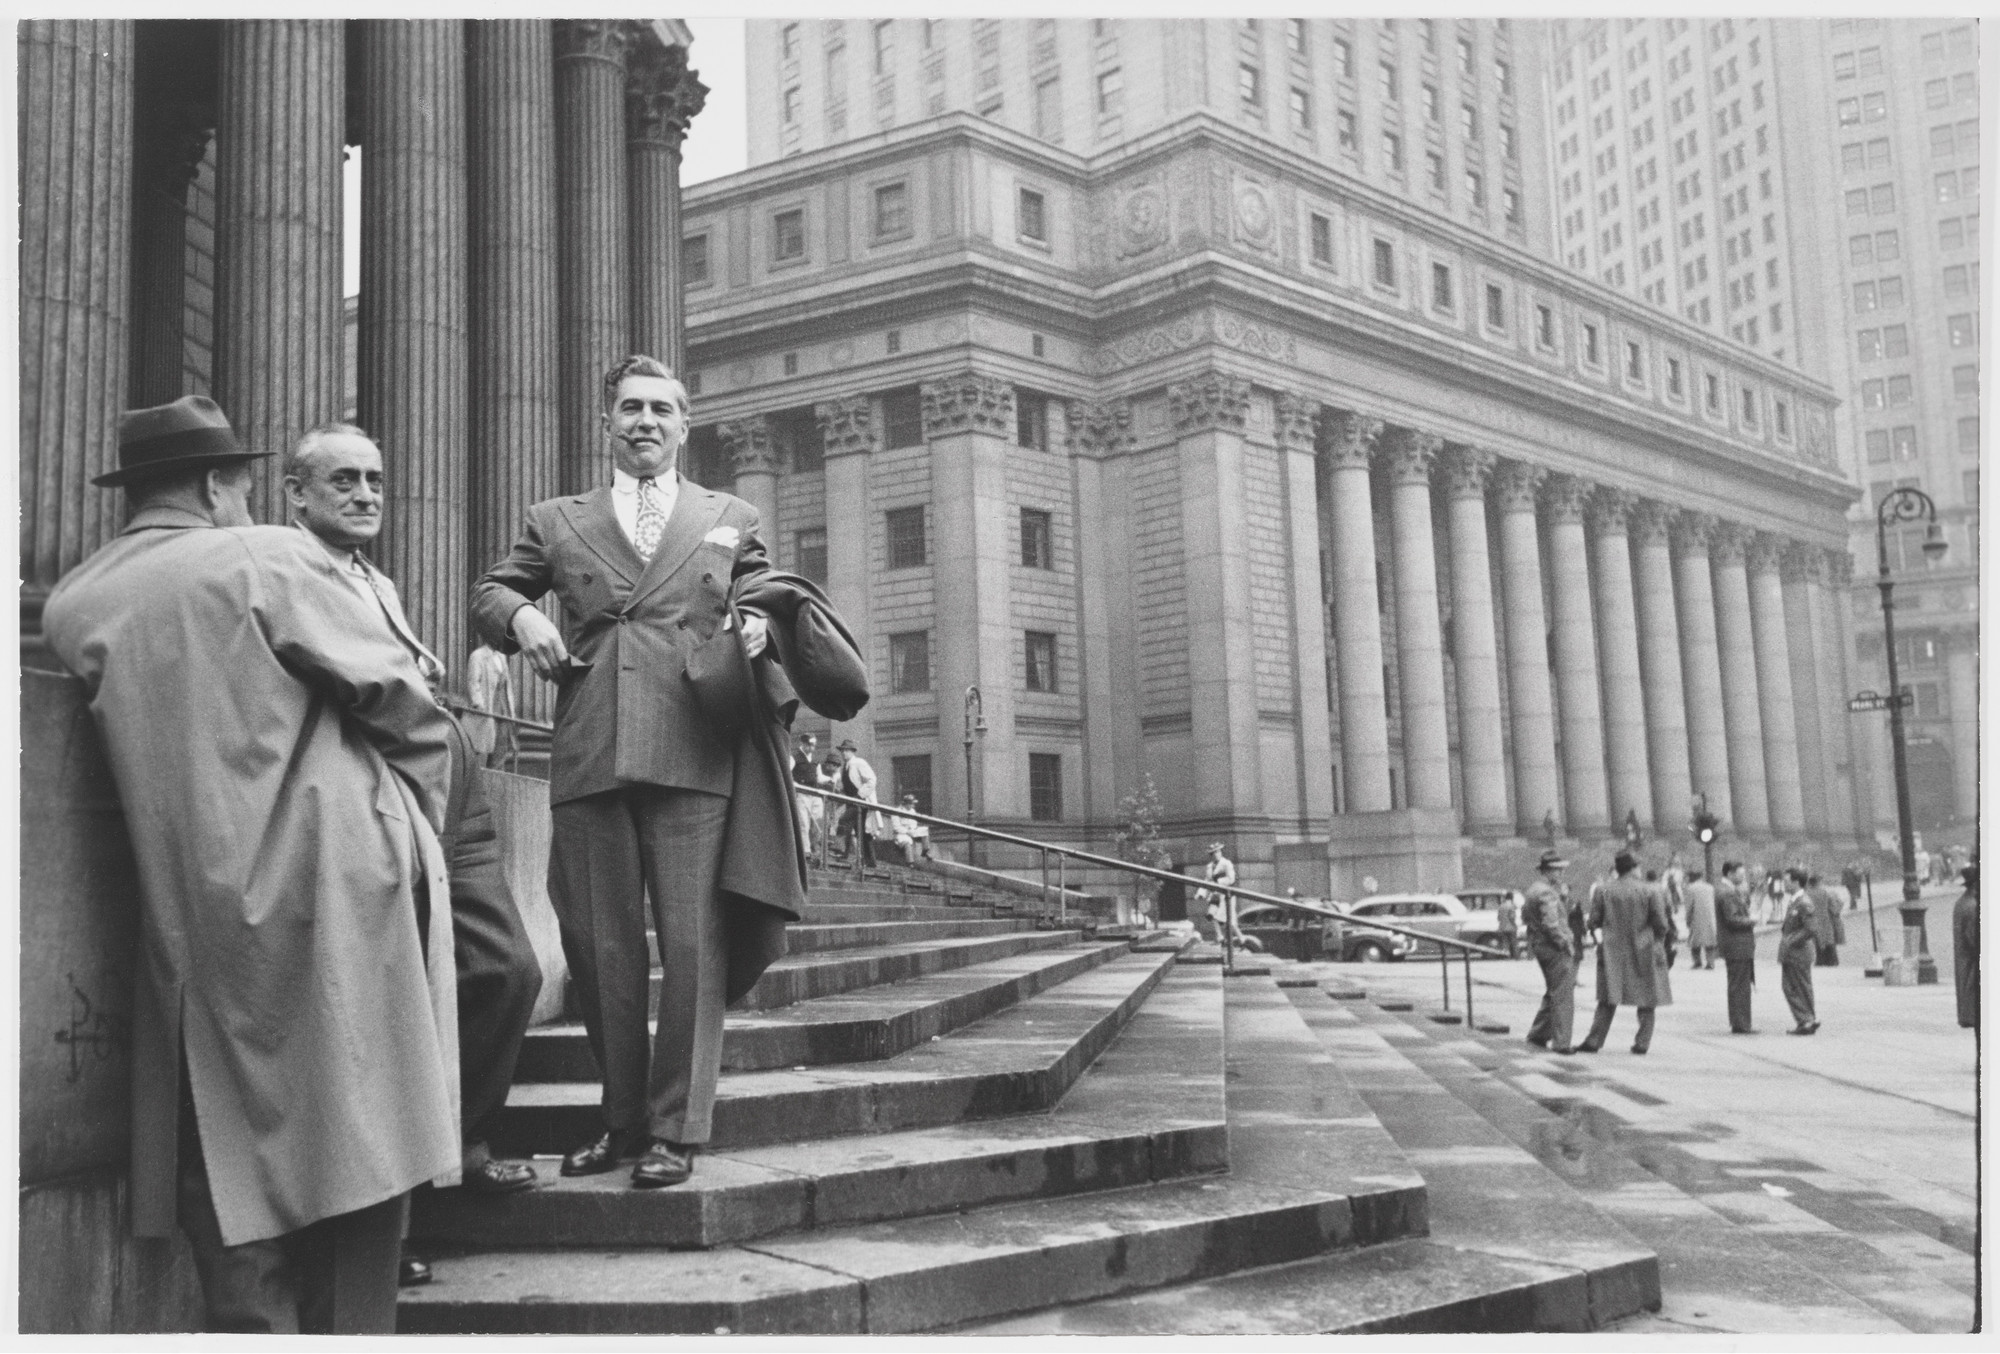 Henri Cartier-Bresson. Near the Hall of Records, New York. 1947